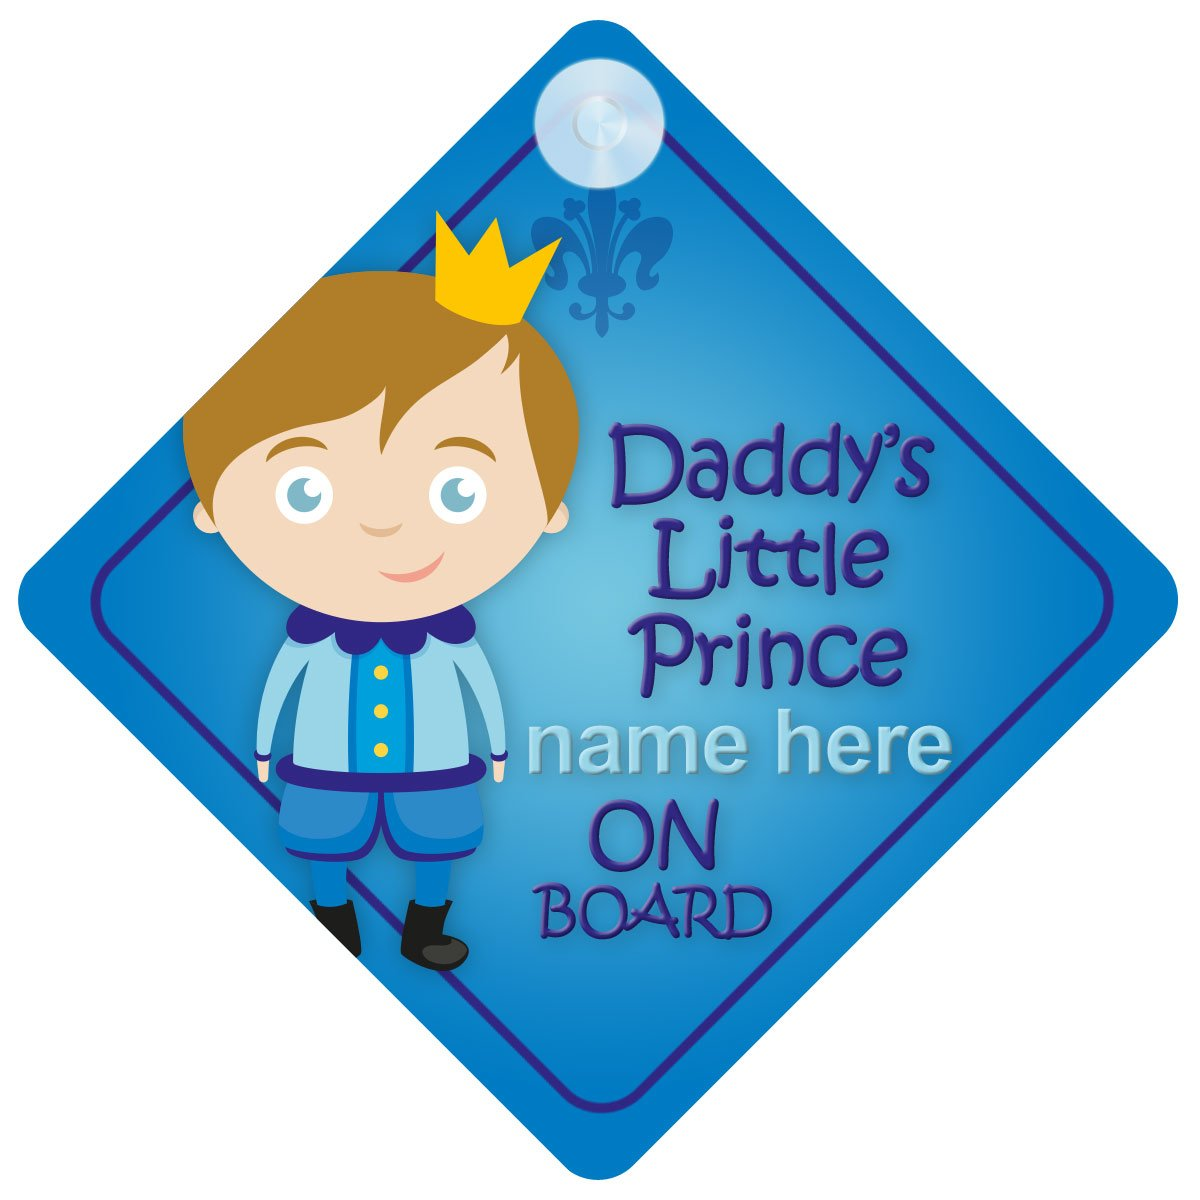 Daddy's Little Prince On Board Personalised Car Sign New Baby Boy/Child Gift/Present BDLP002